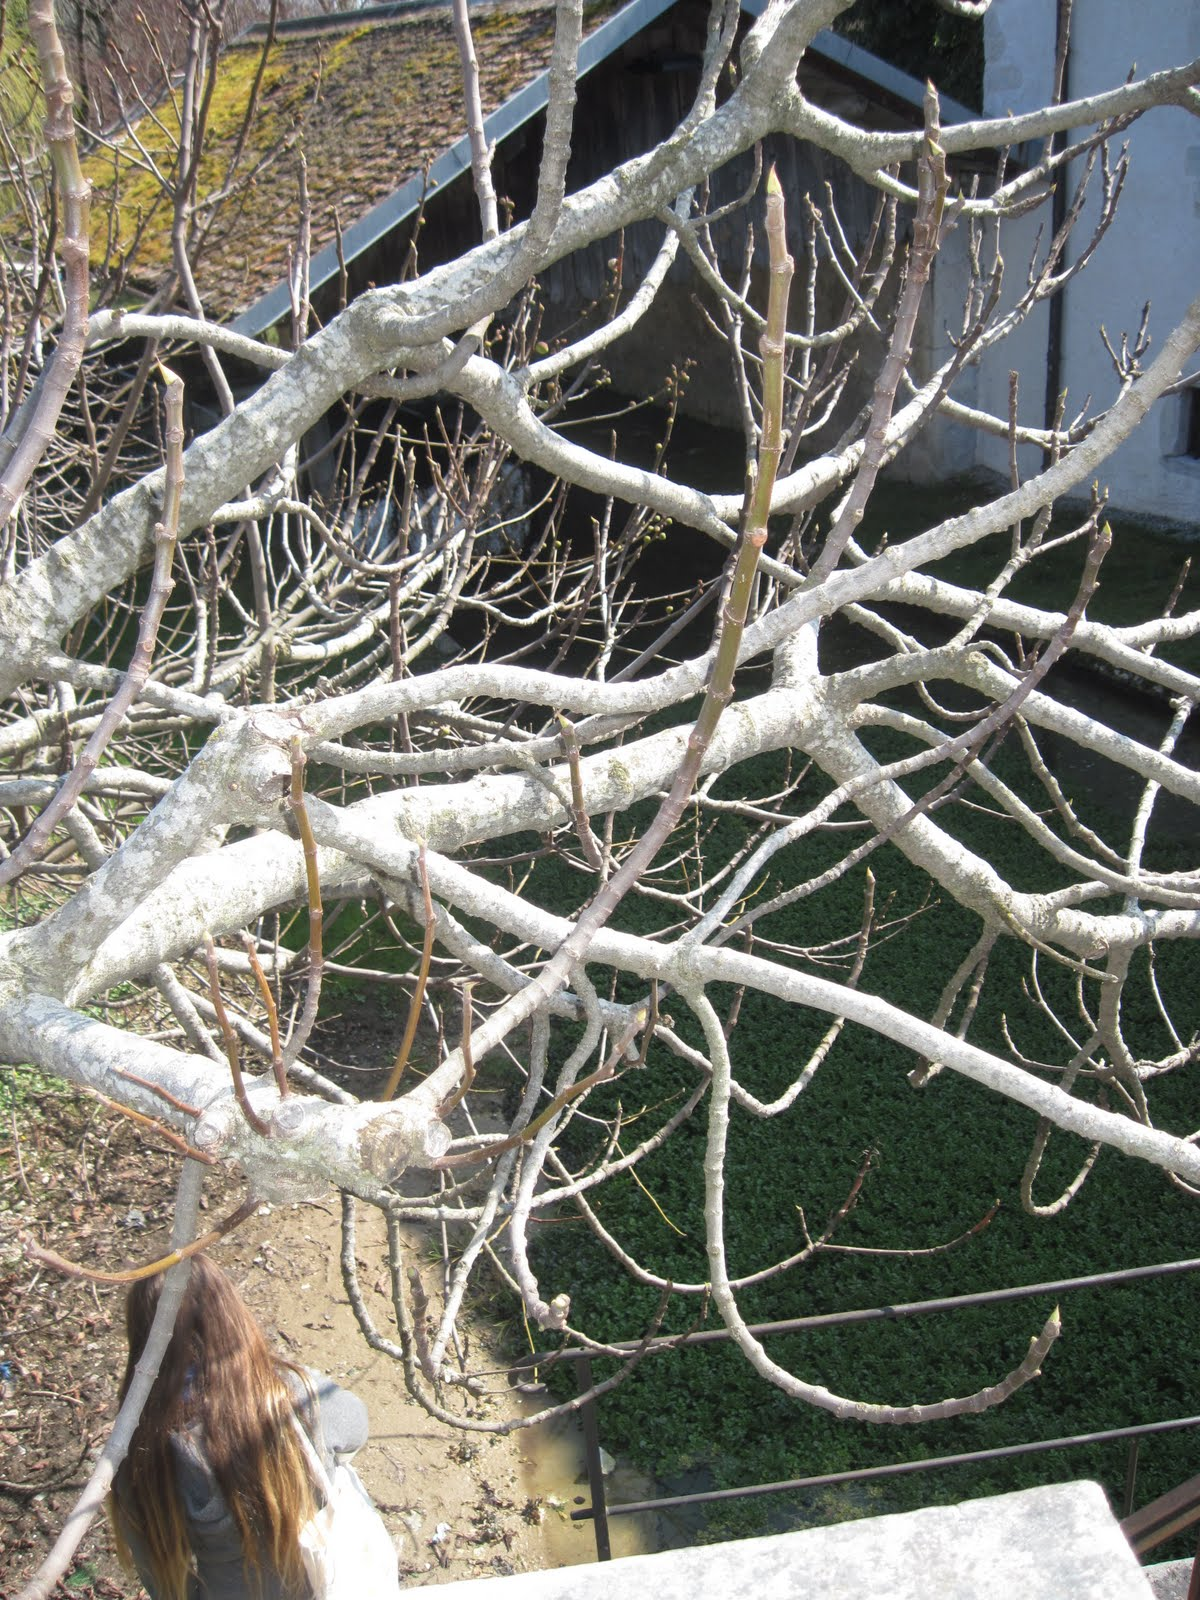 Fig Tree Pruning http://outlawnotahero.blogspot.com/2011/03/tutorial-trebek-propagating-fig-trees.html